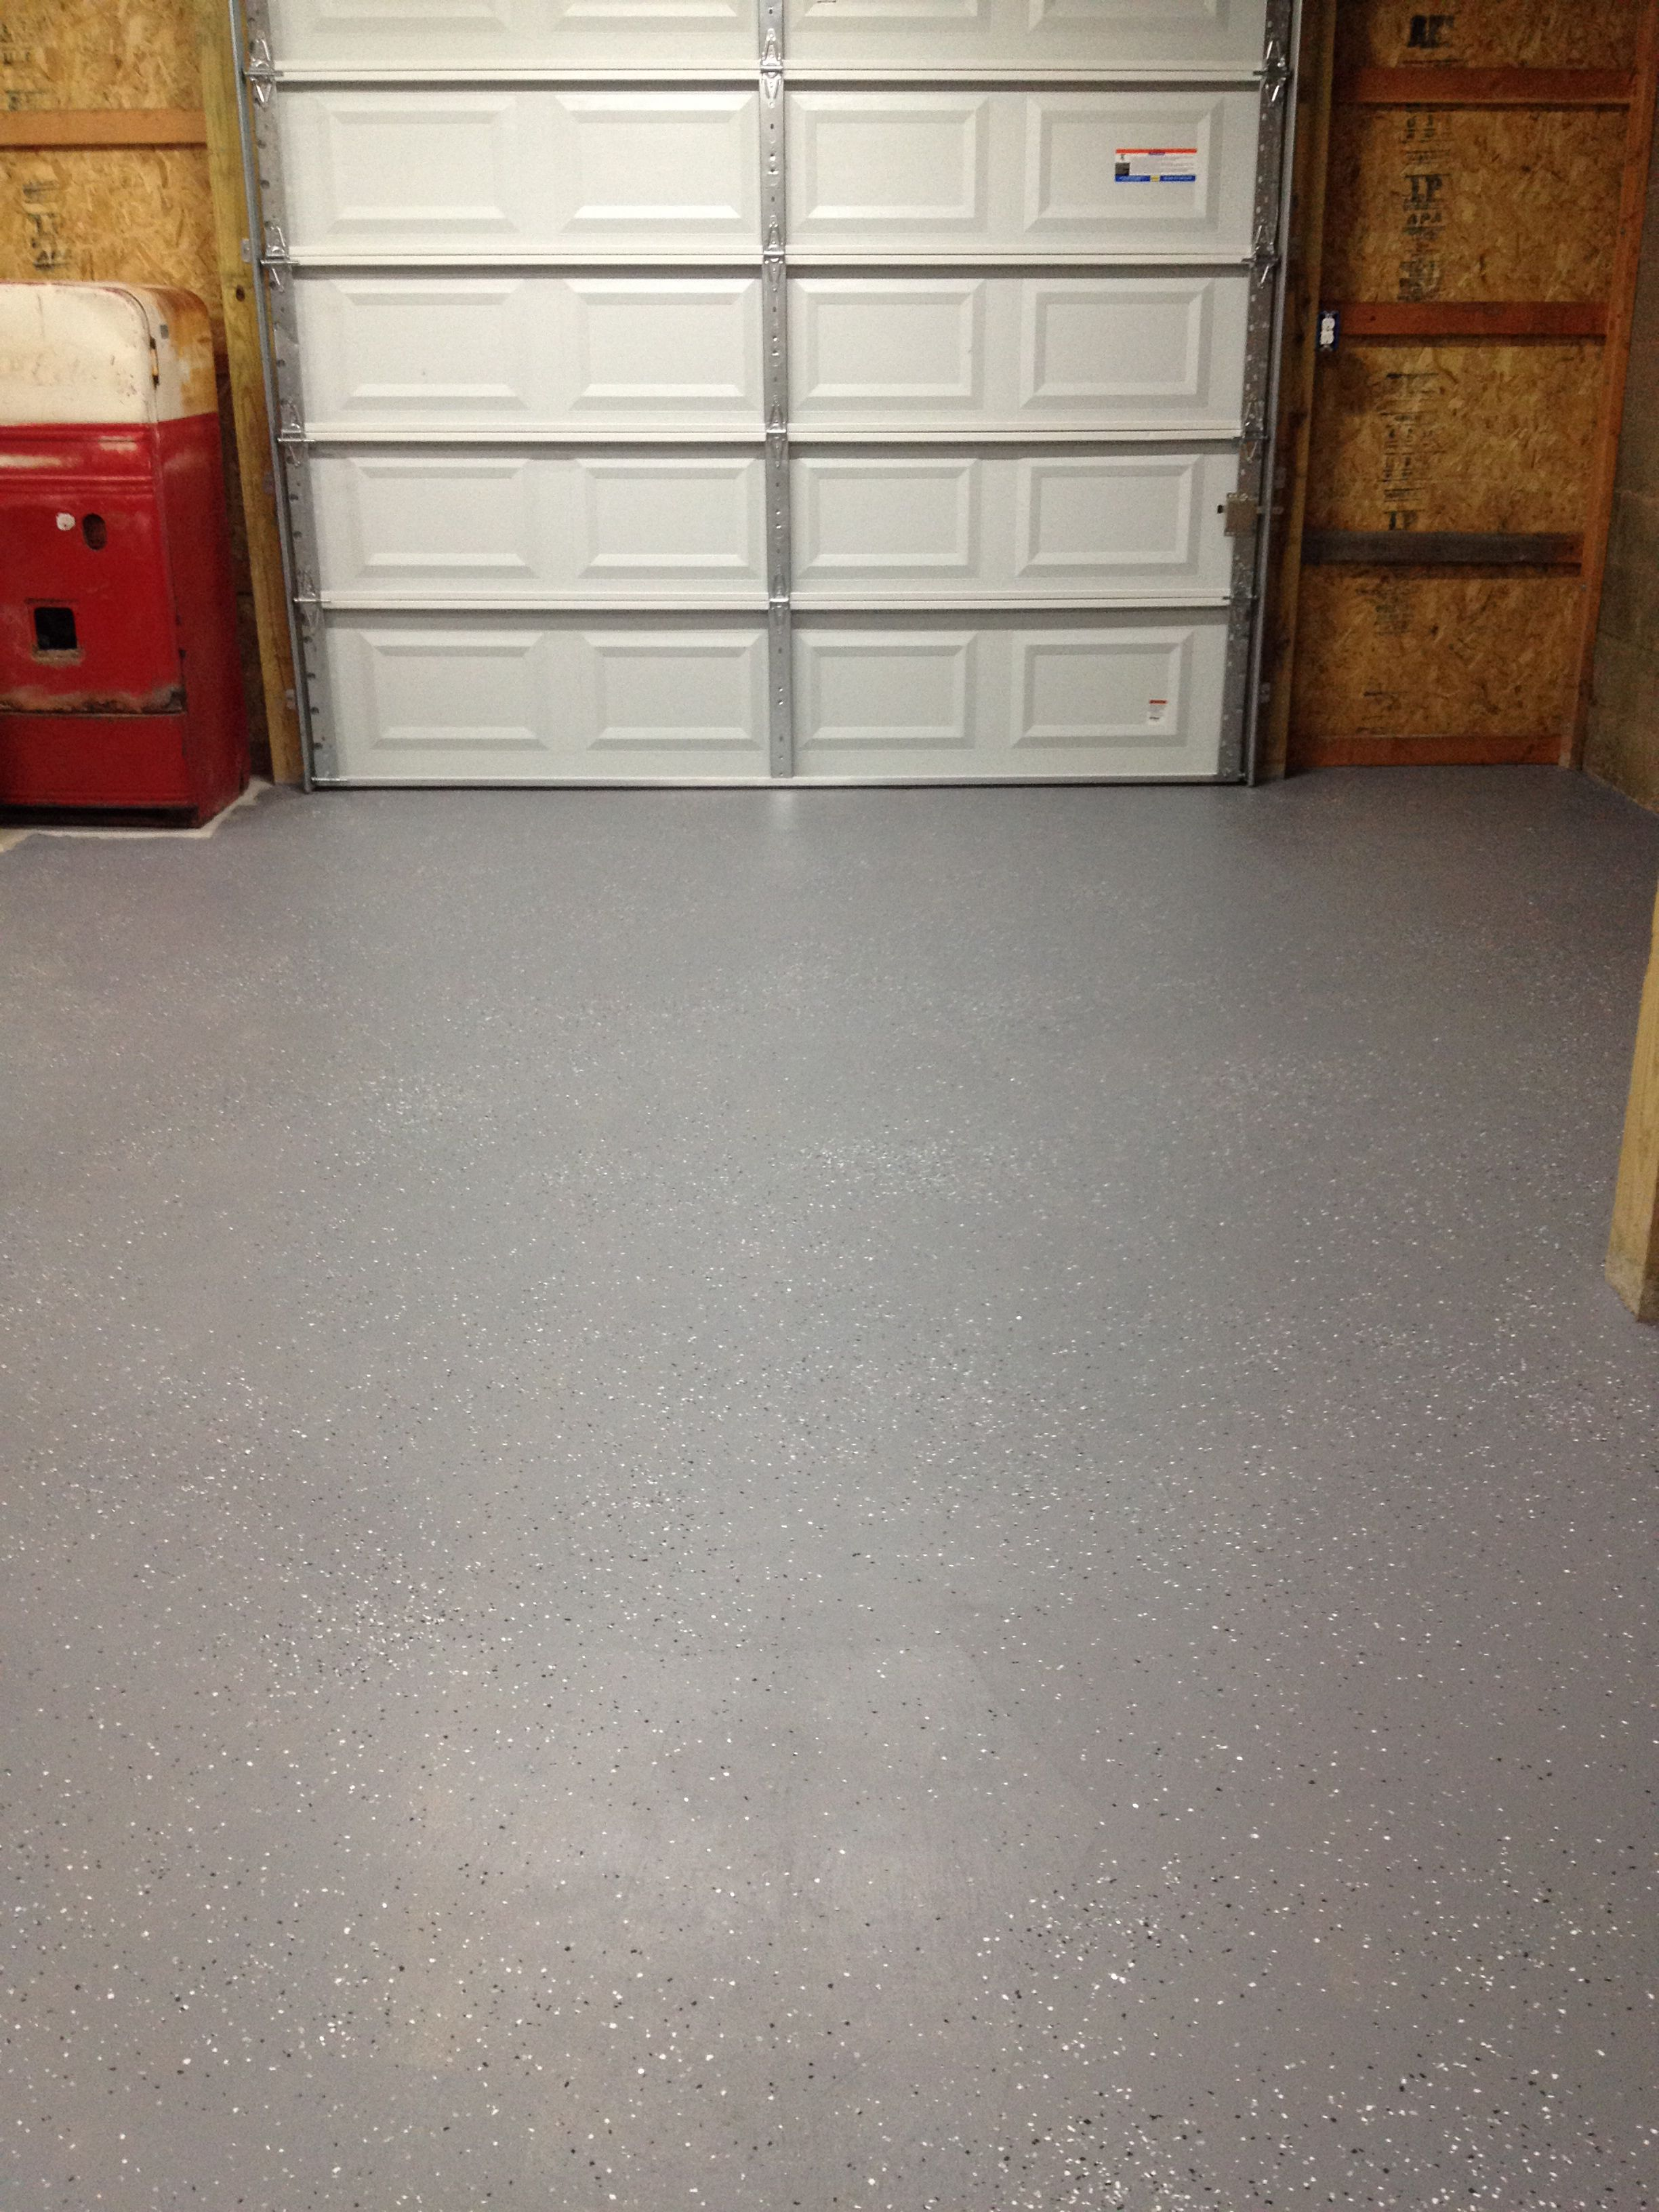 Behr 1 Part Epoxy Garage Floor Paint With Metallic Flakes From The